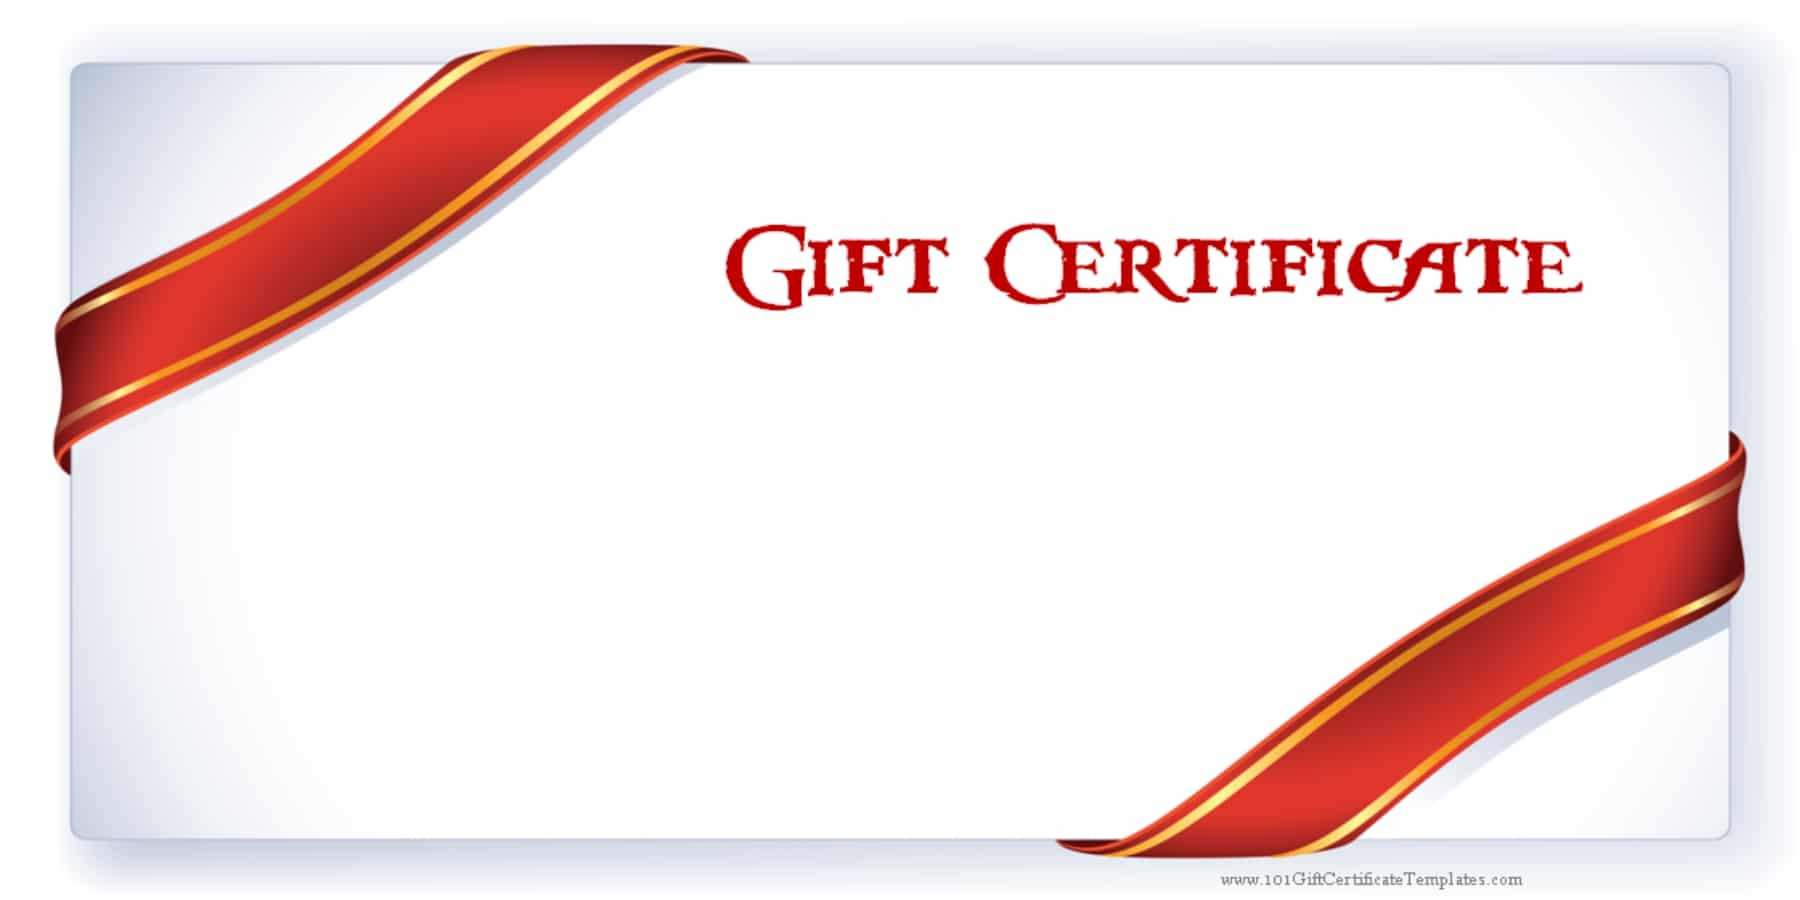 Printable Gift Certificate Templates Pertaining To Graduation Gift Certificate Template Free